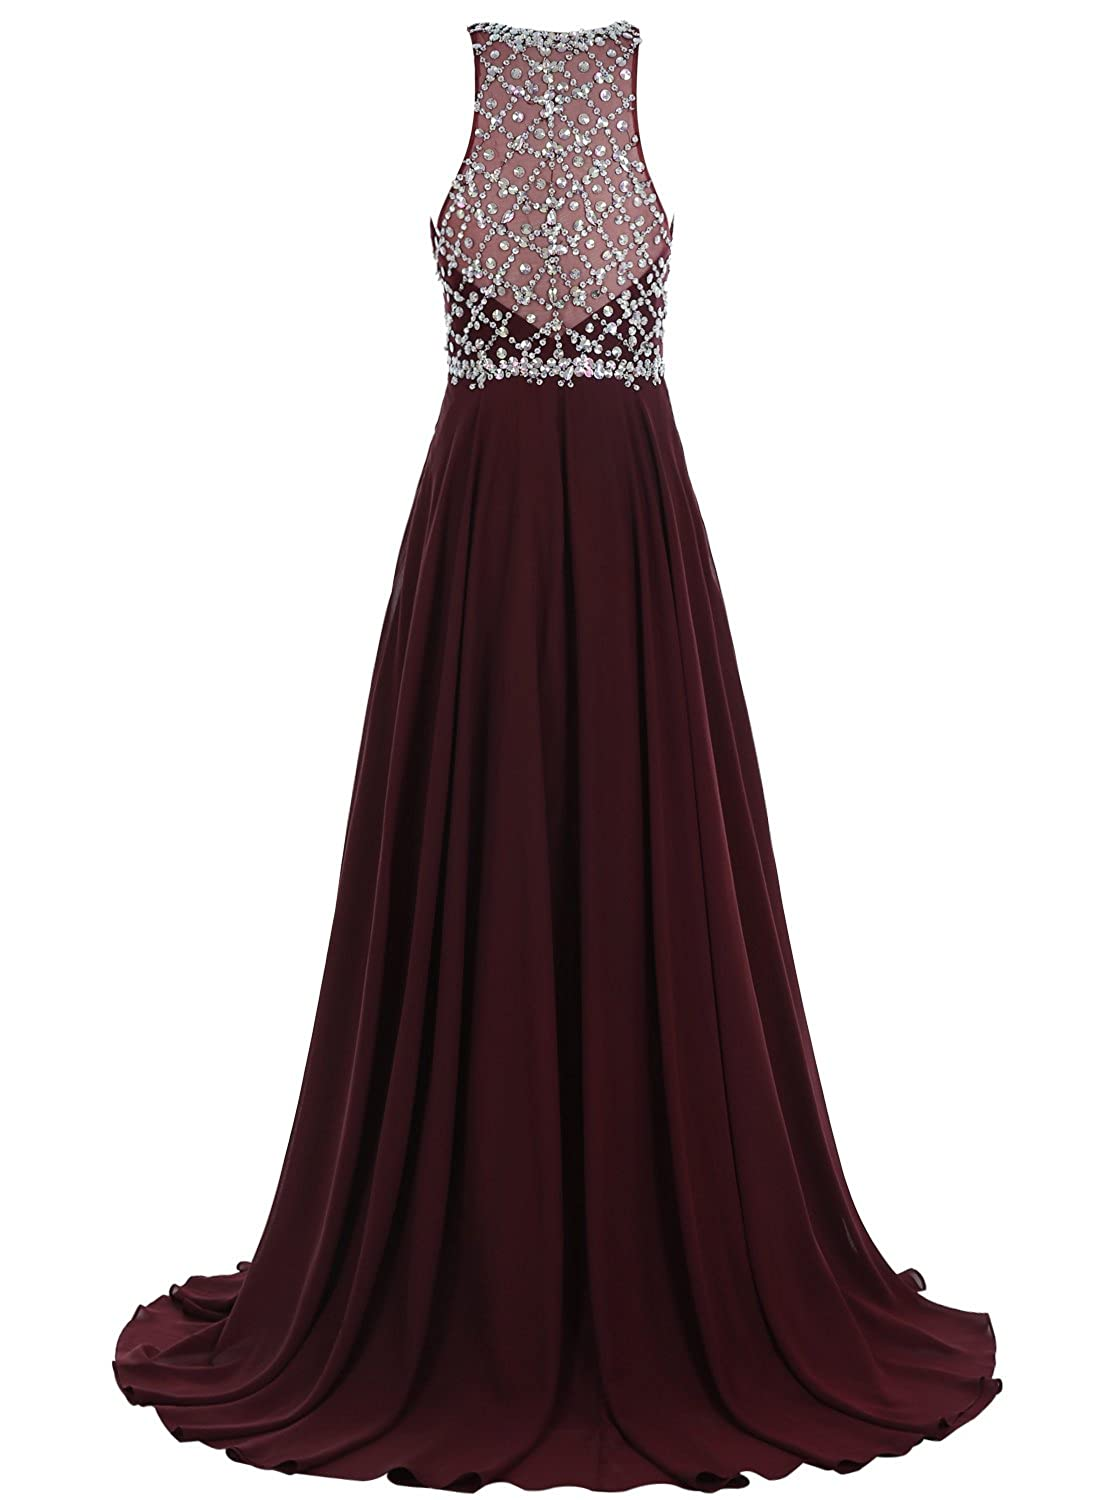 Amazon.com: Bbonlinedress Long Chiffon Prom Dresses Beadings Sequined A-Line Sleeveless Evening Gowns: Clothing